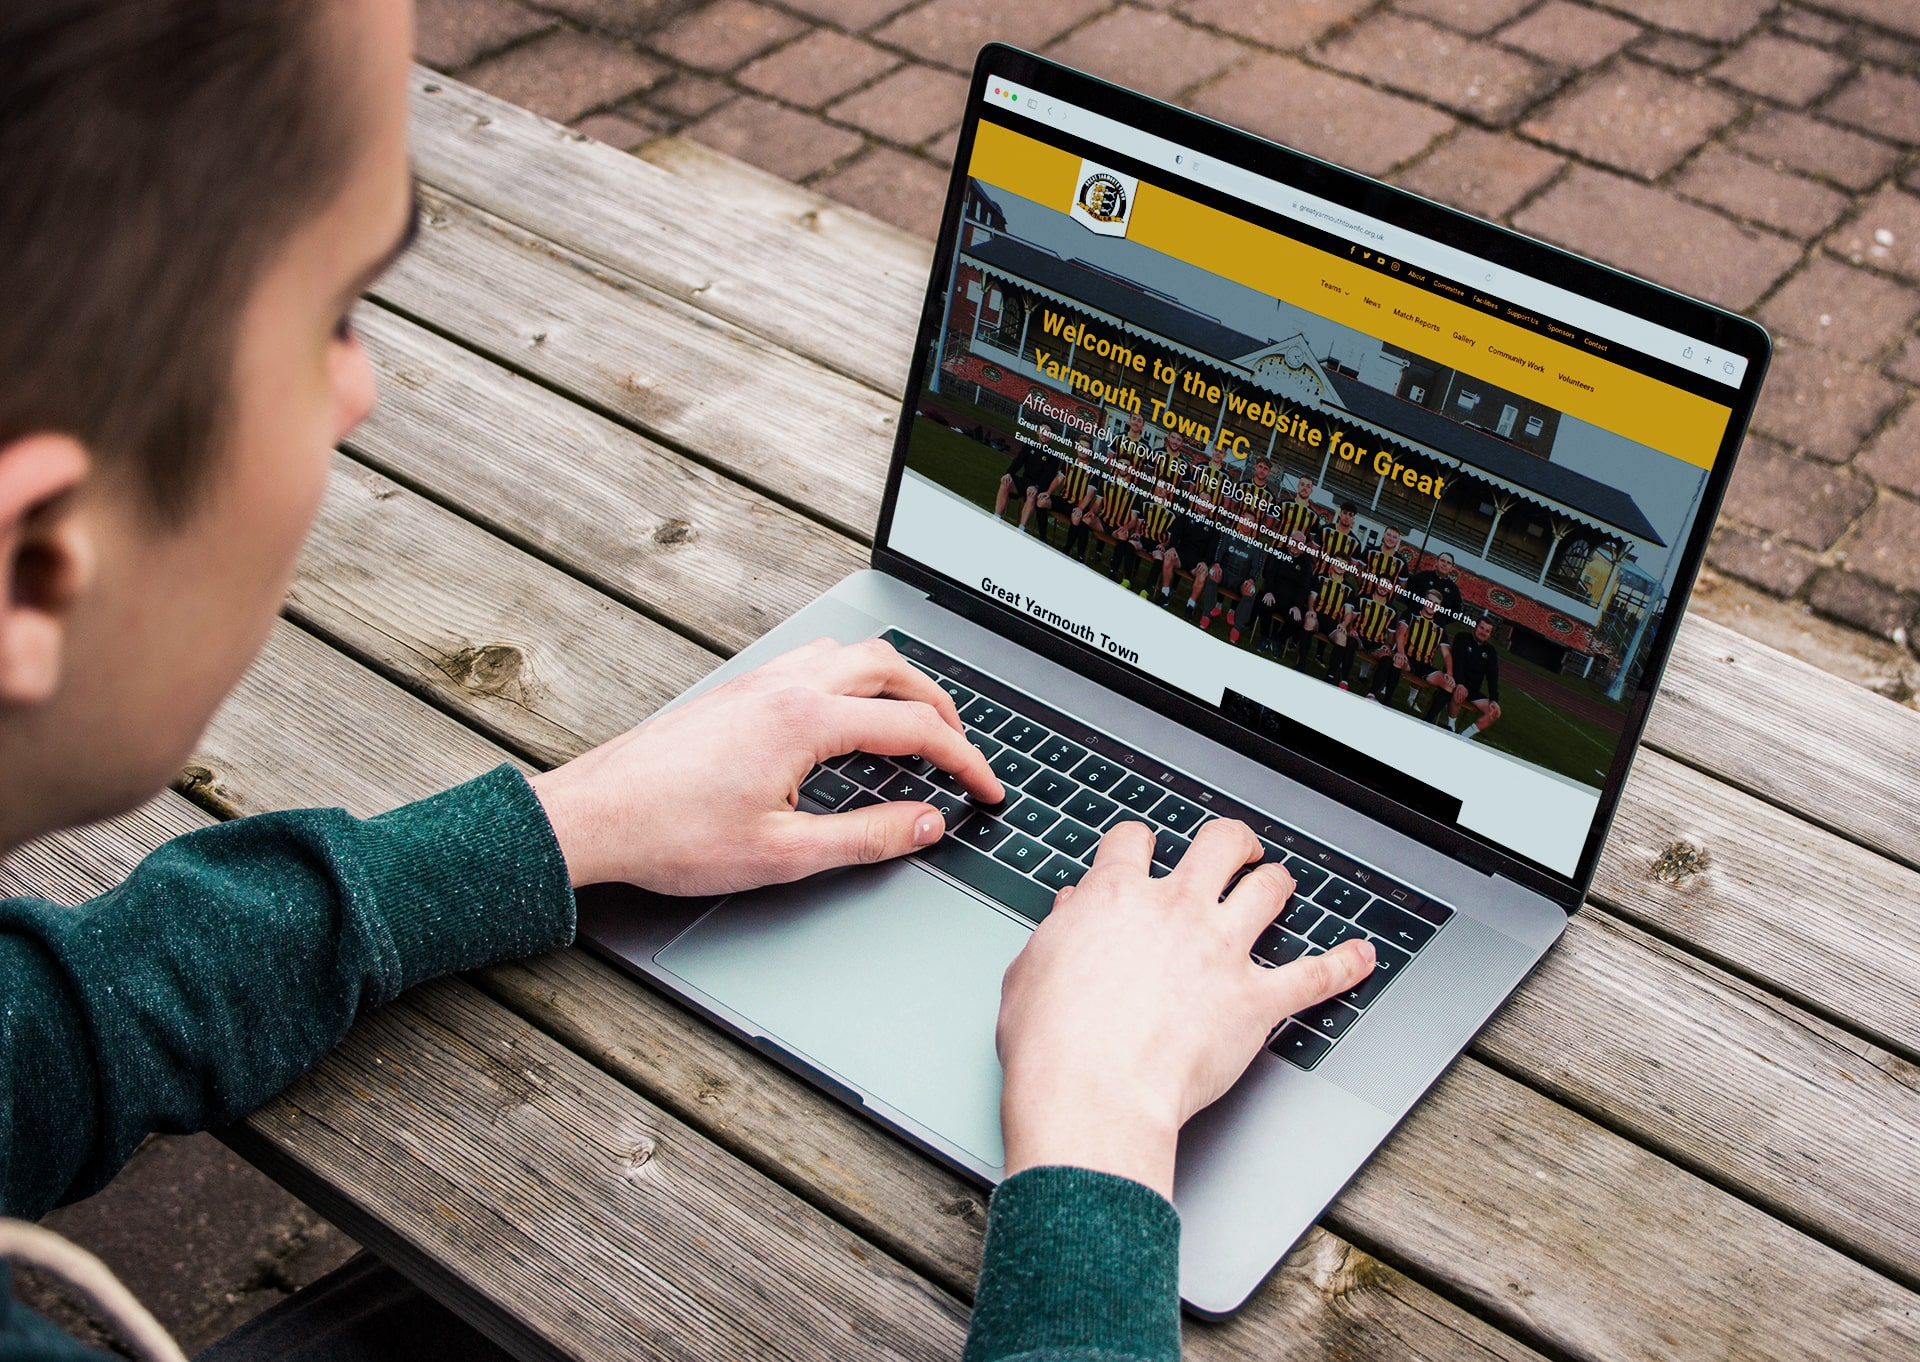 Great Yarmouth Town Football Club website laptop view